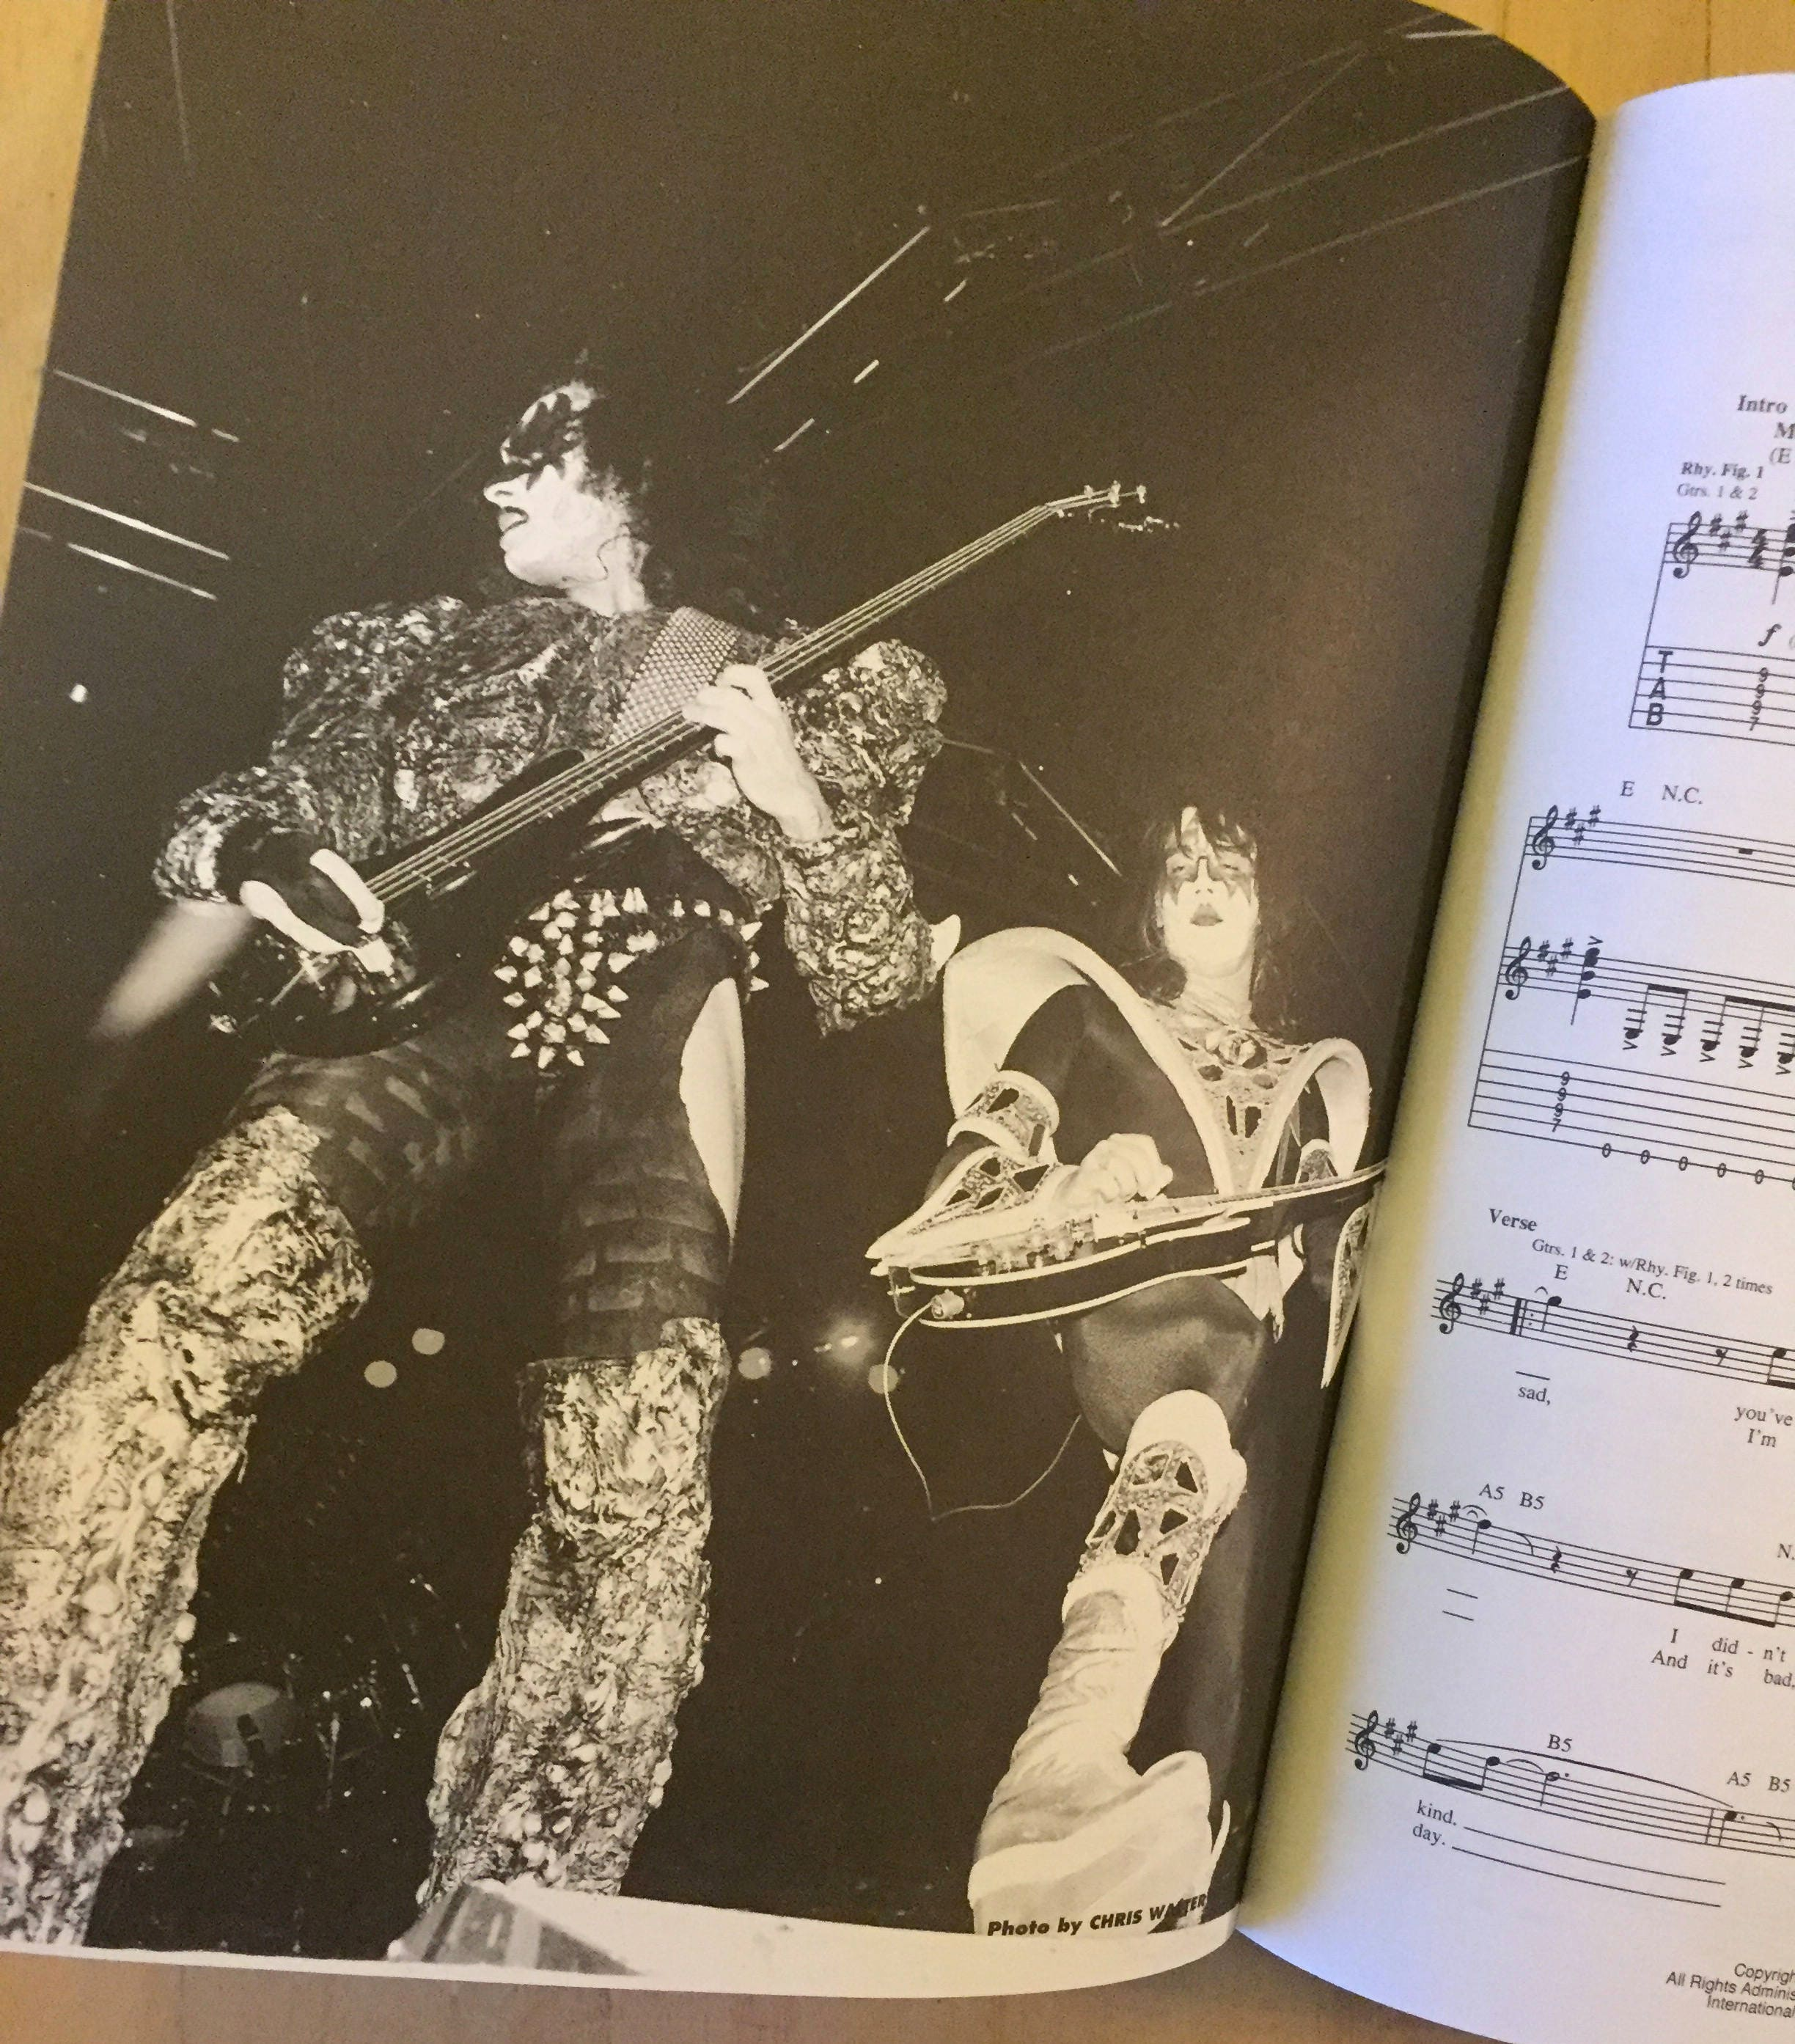 Best of KISS Hal Leonard for guitar - Softcover sheet music